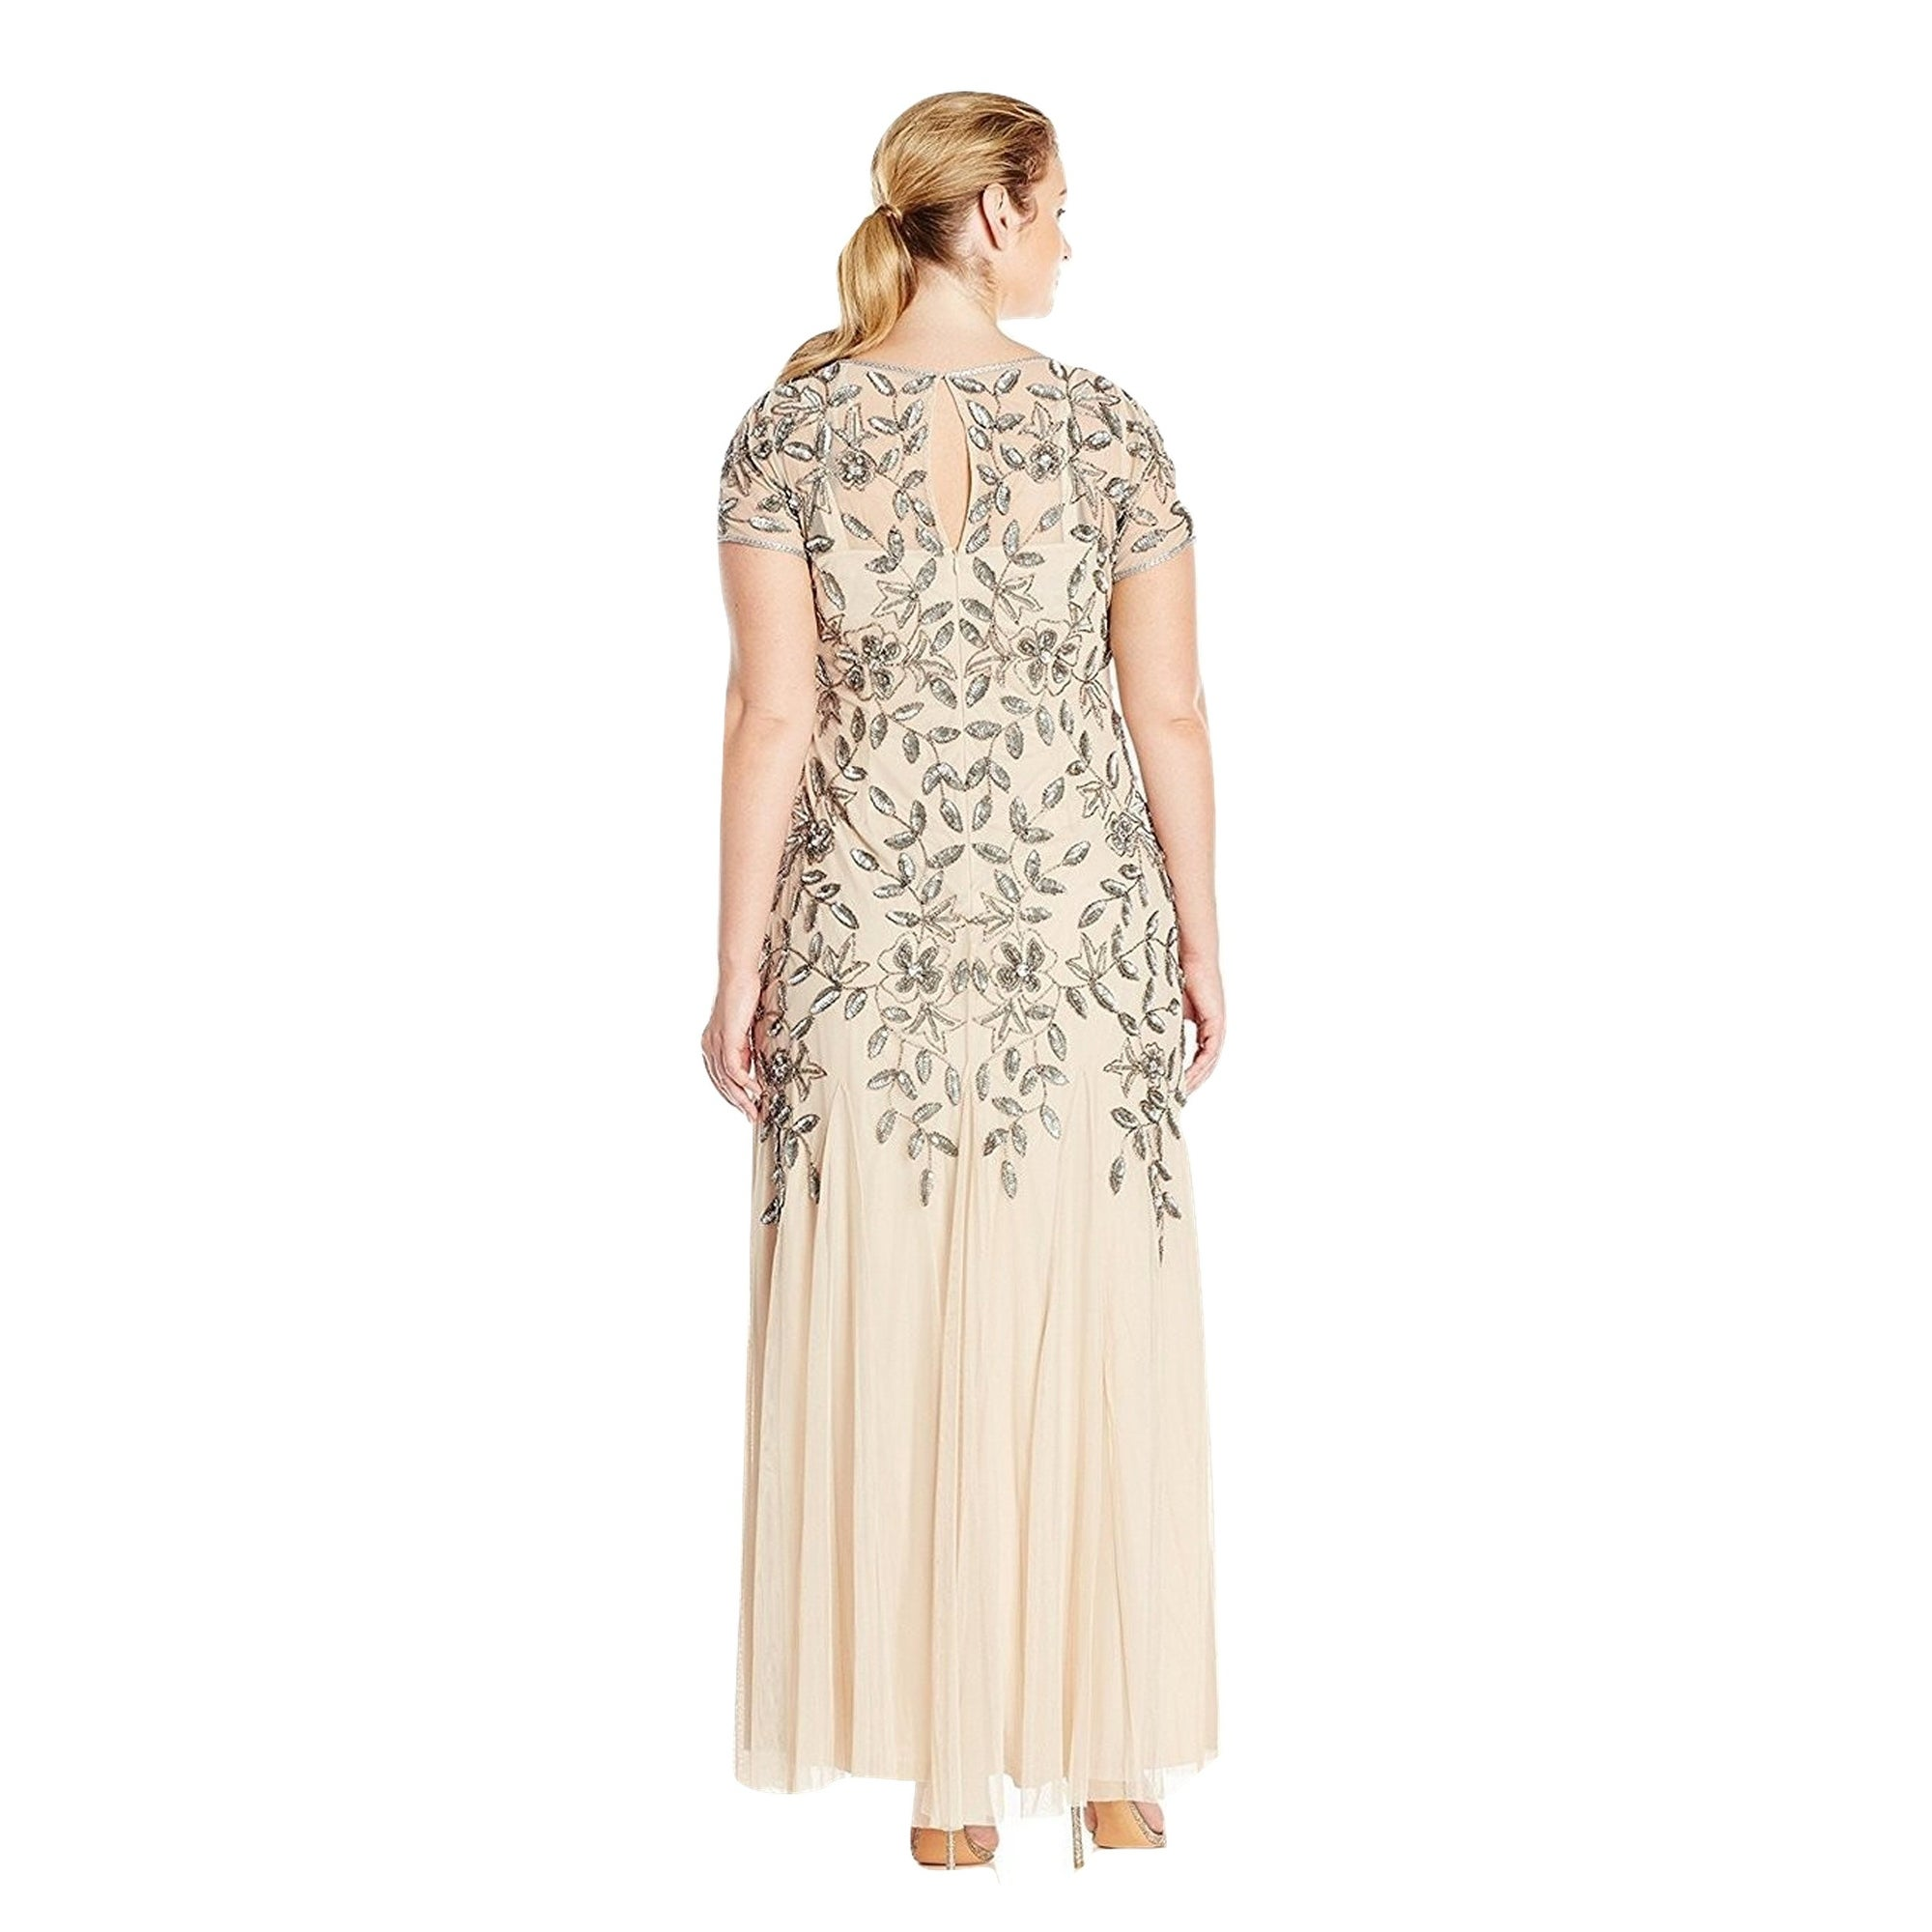 Shop Adrianna Papell Floral Beaded Godet Short Sleeve Evening Gown